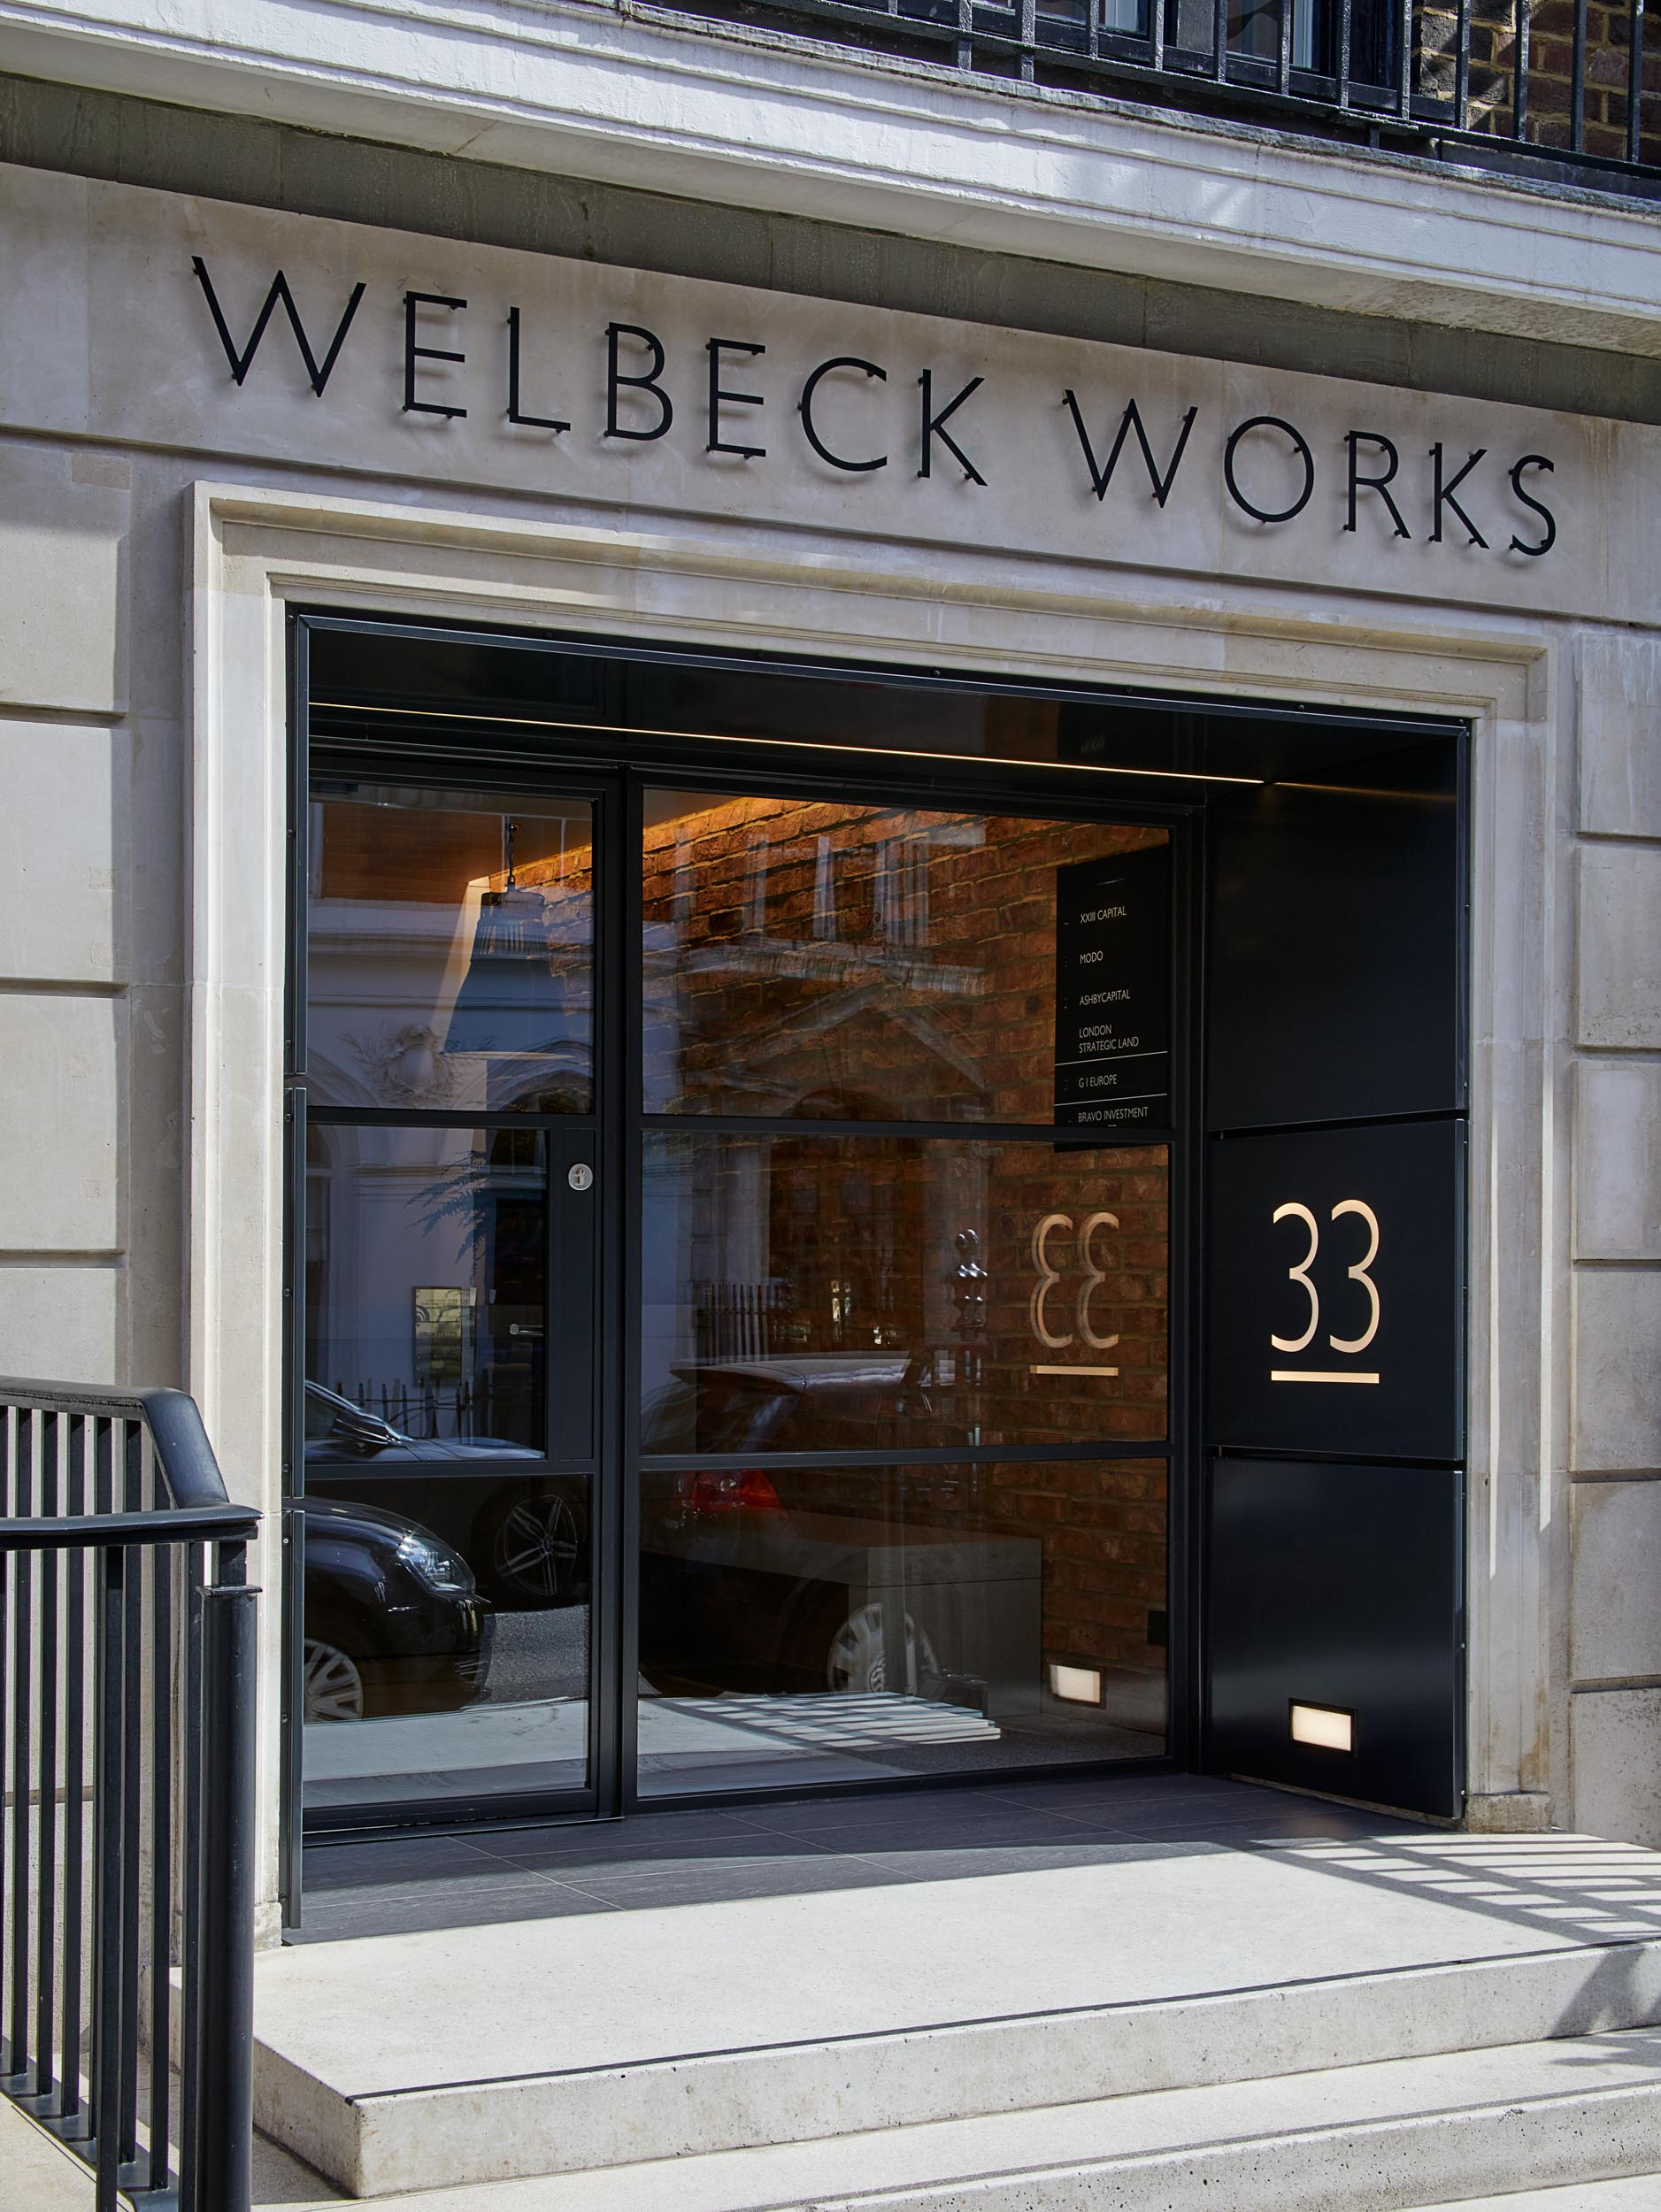 Welbeck works creative office